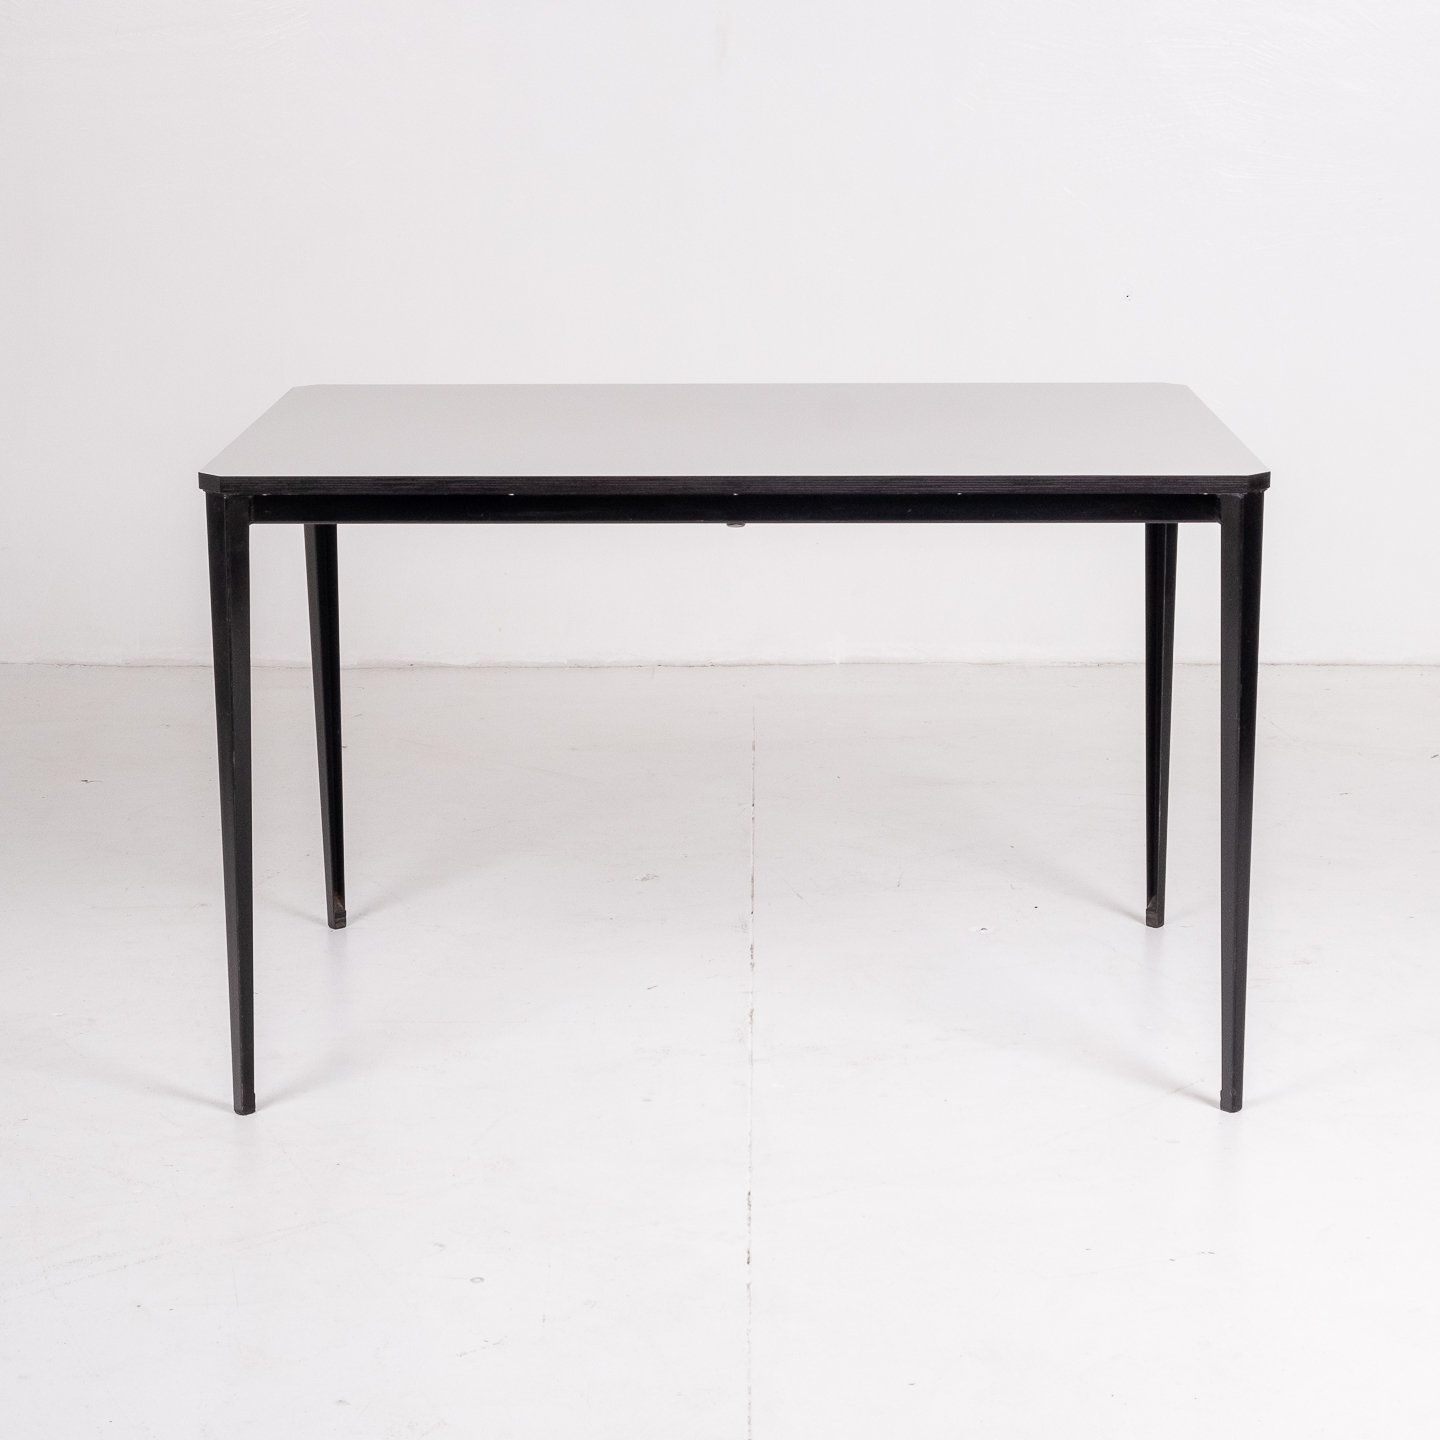 Recent Table By Wim Rietveld For Ahrend De Cirkel With Black Steel Base, 1960s, The Netherlands53